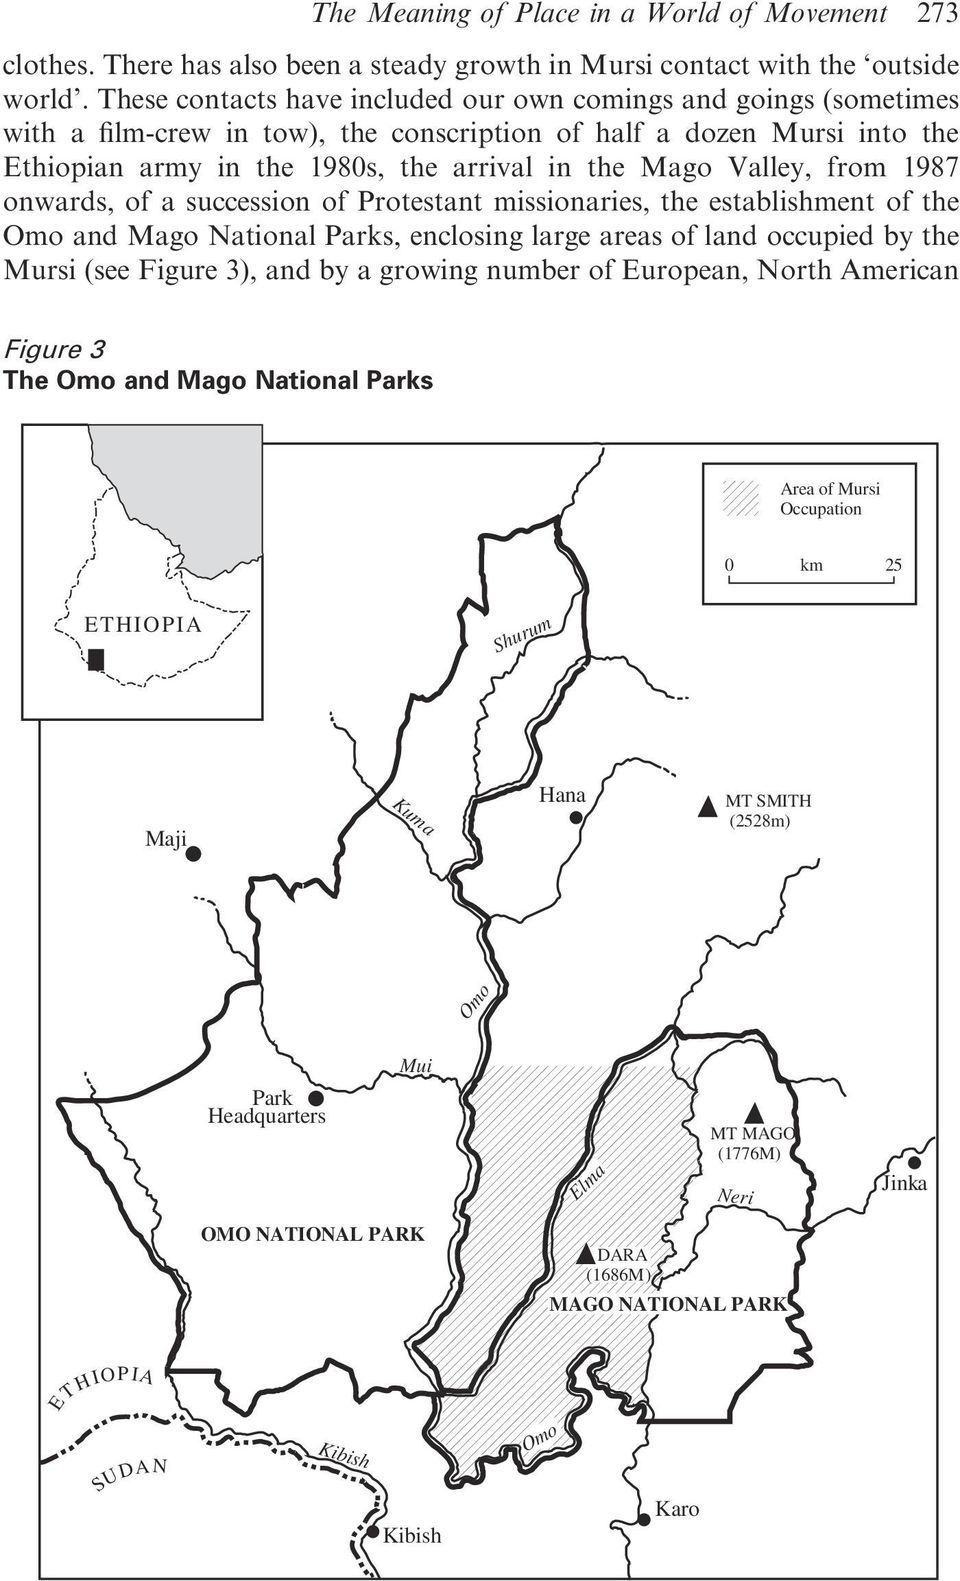 Valley, from 1987 onwards, of a succession of Protestant missionaries, the establishment of the Omo and Mago National Parks, enclosing large areas of land occupied by the Mursi (see Figure 3), and by